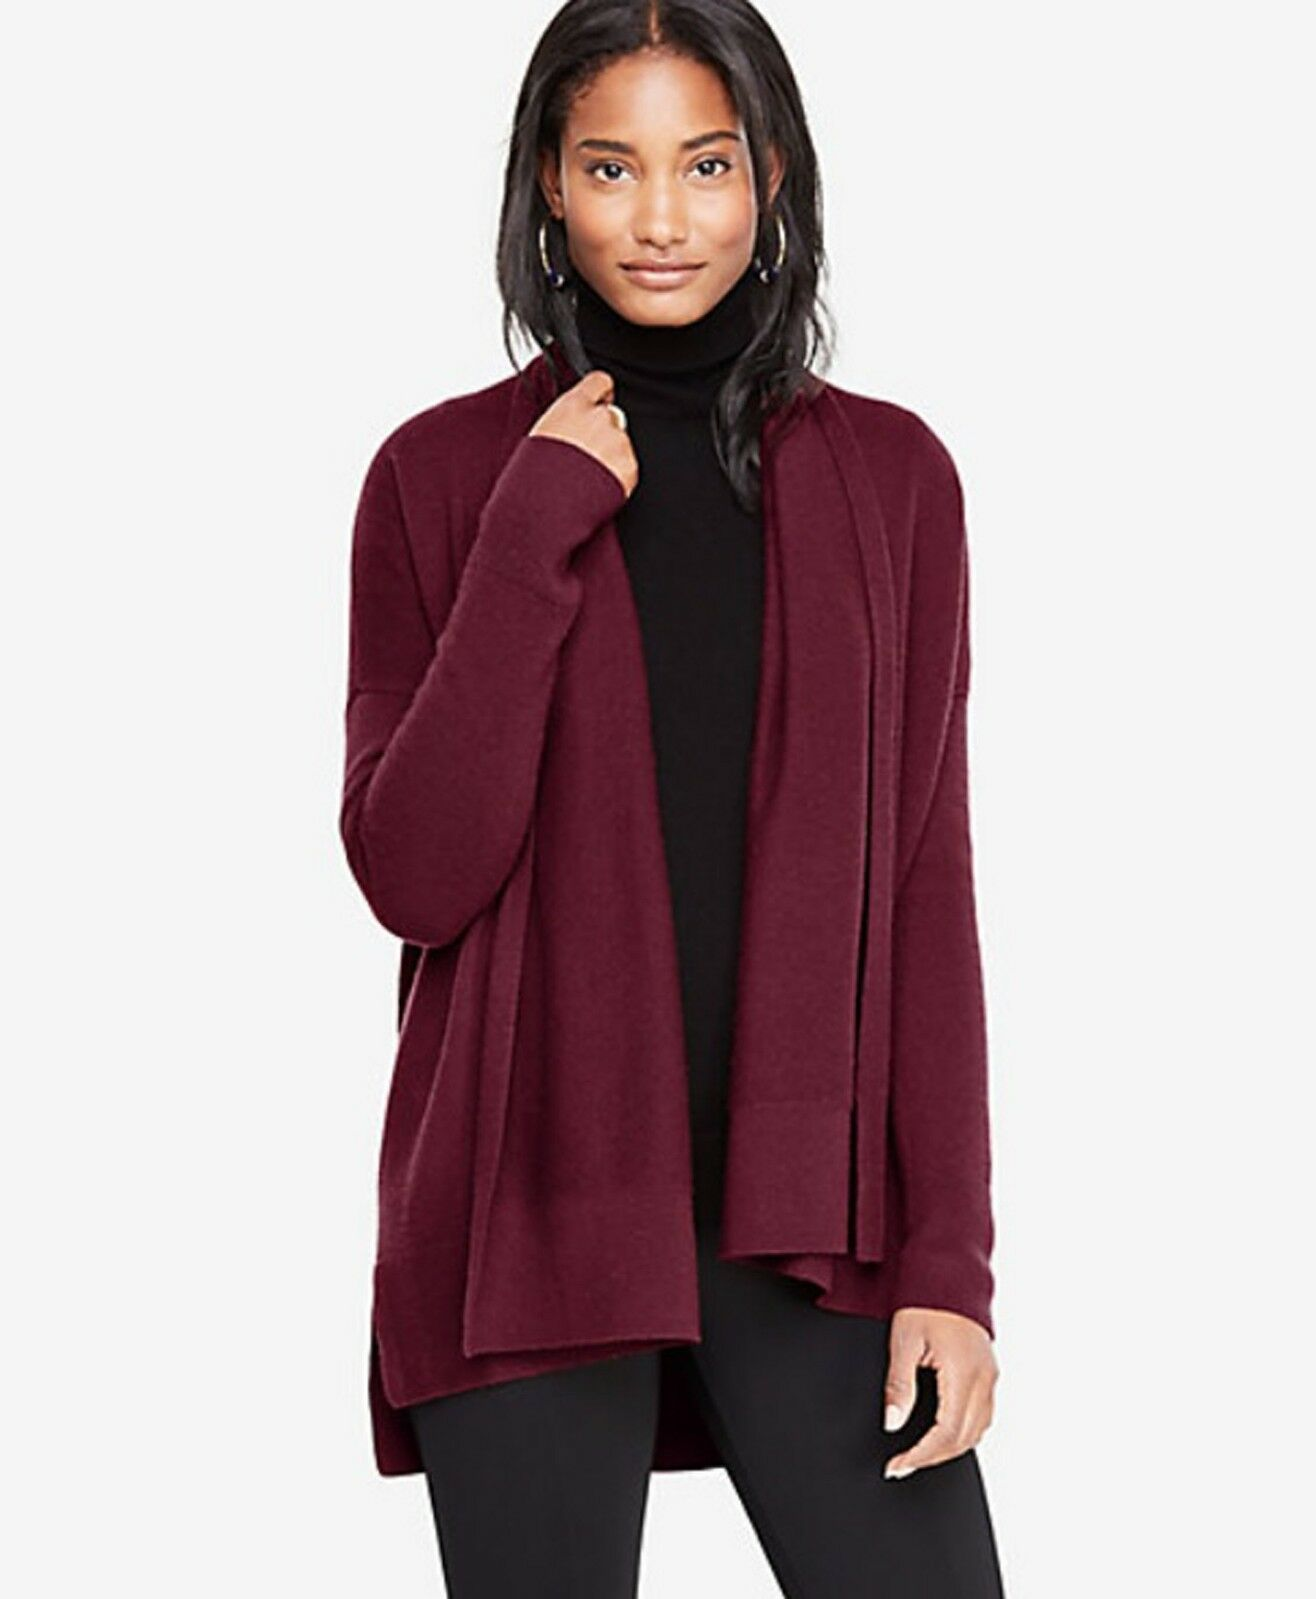 NWT Ann Taylor Tinto Red Cashmere Ribbed Open Cardigan Sweater Size S